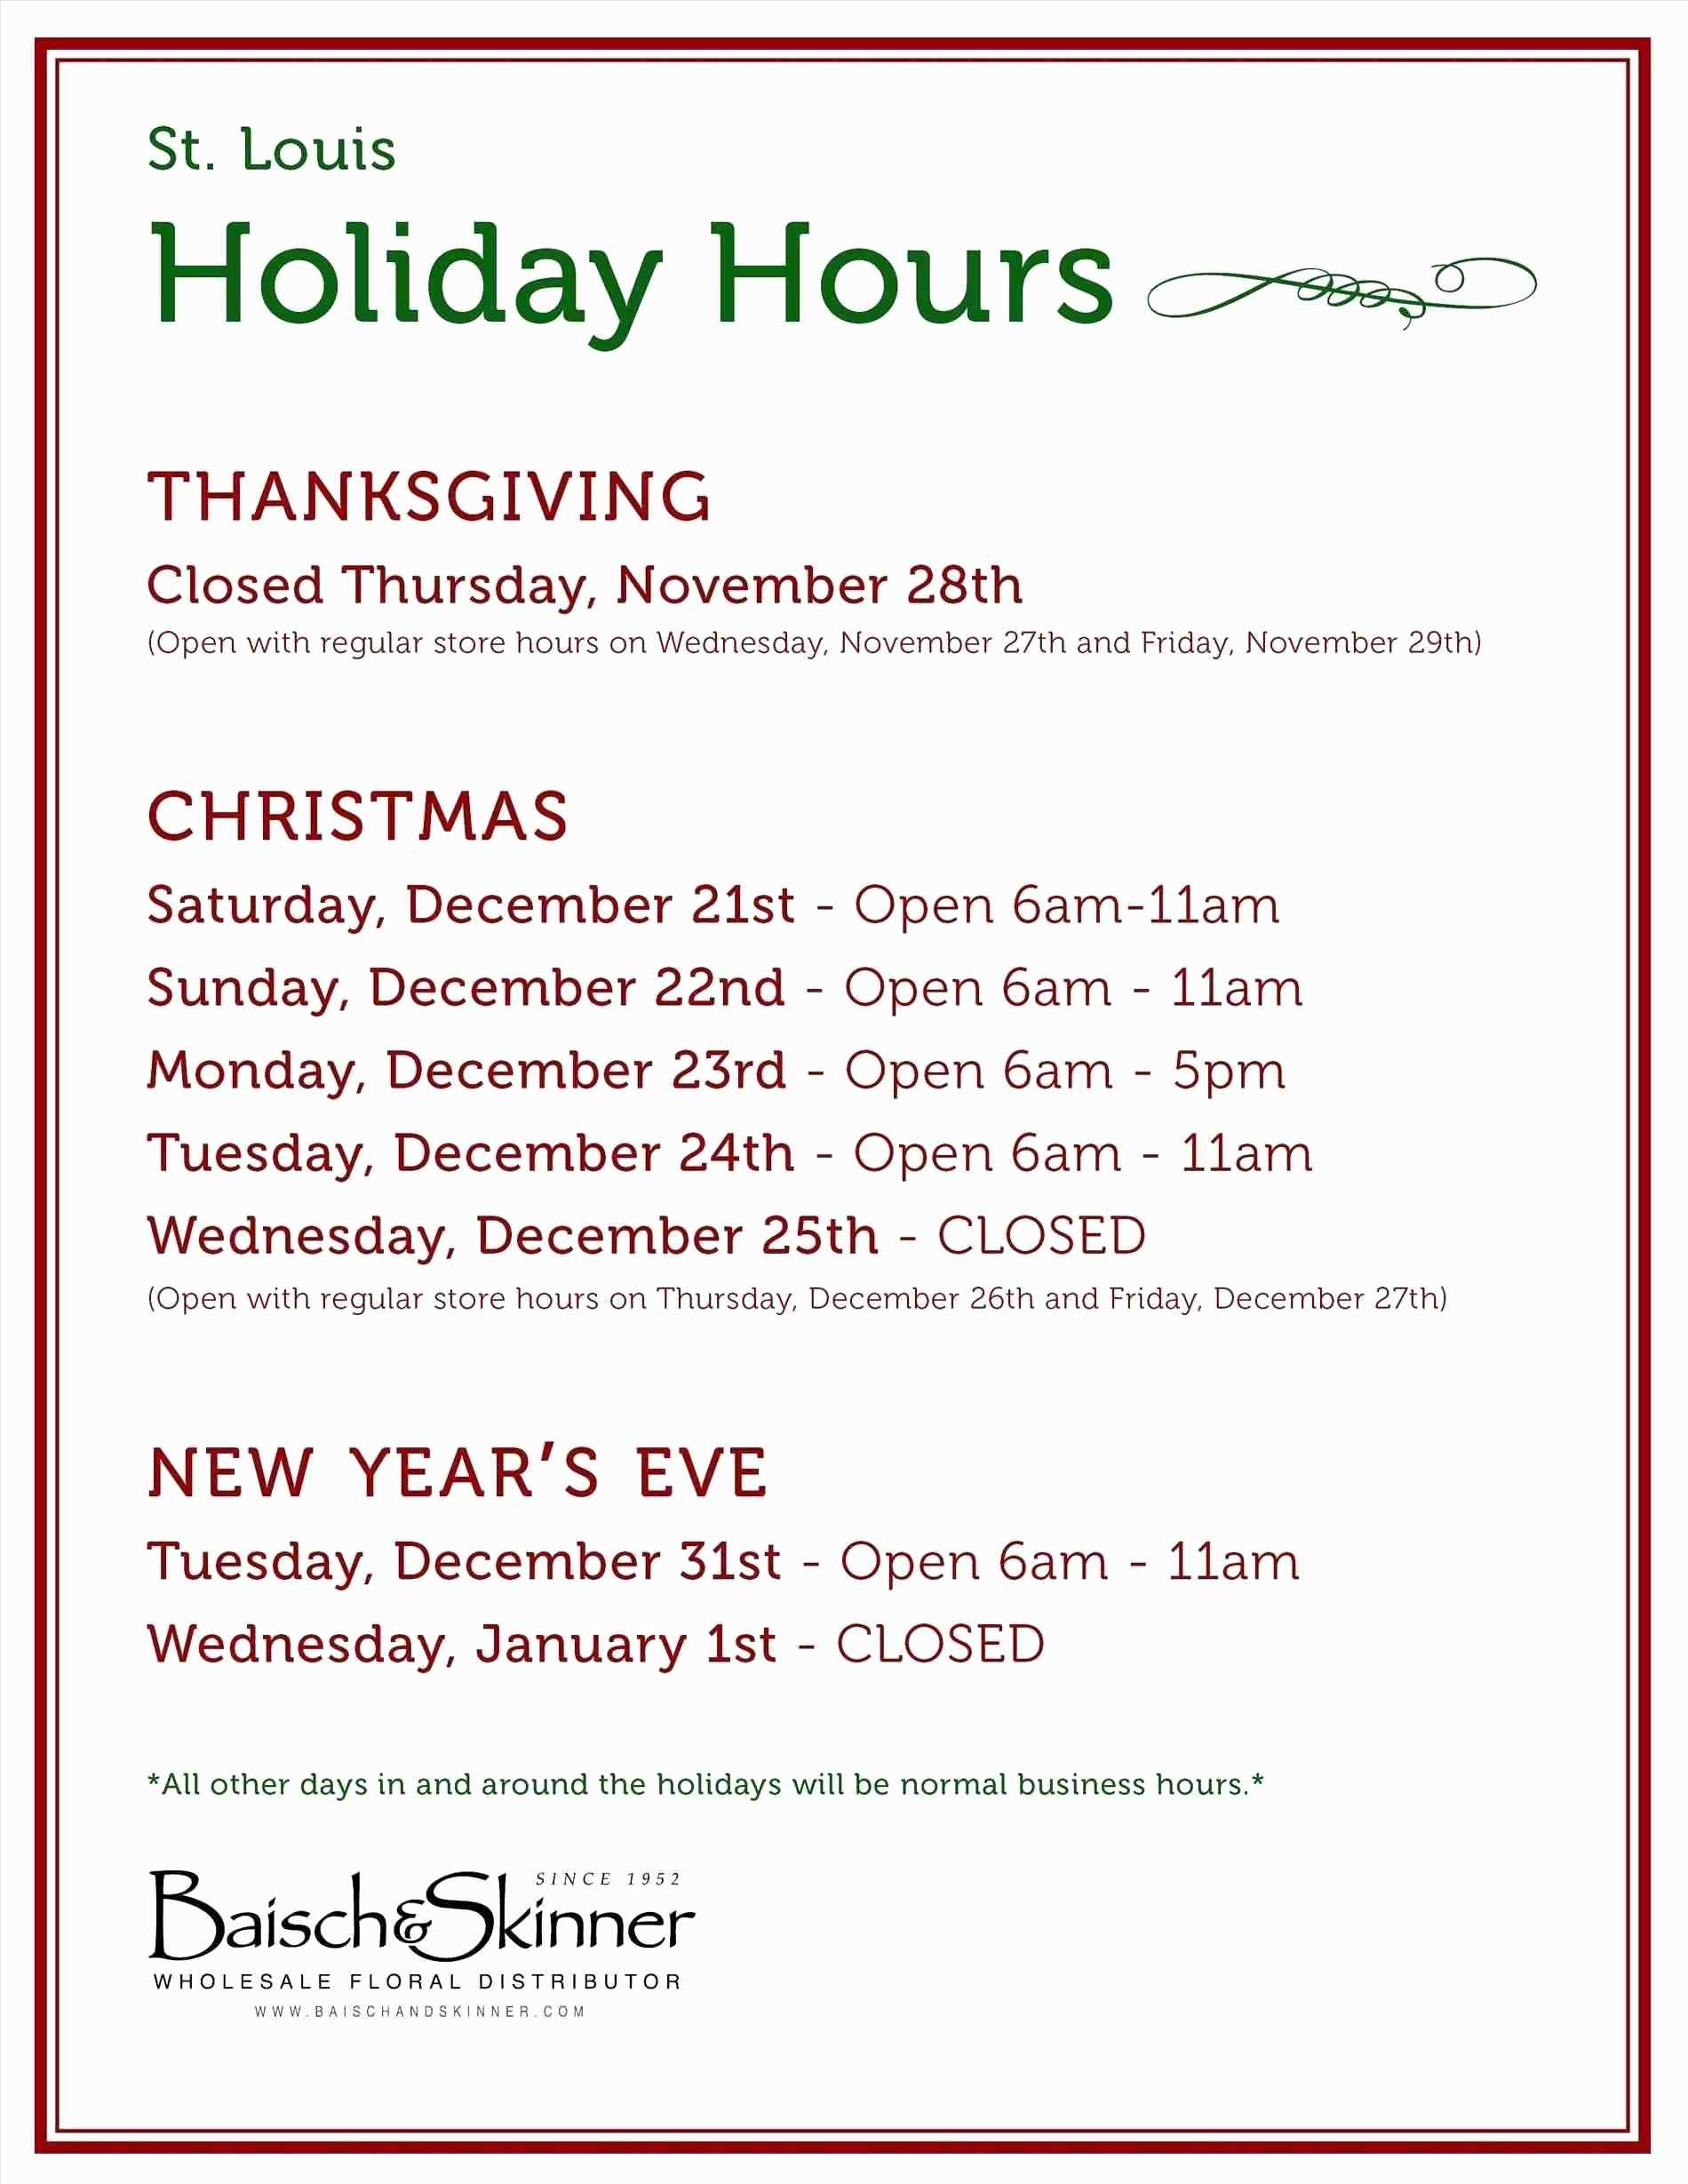 Printable Business Hours Sign Template Valid Business Sign Templates - Free Printable Business Hours Sign